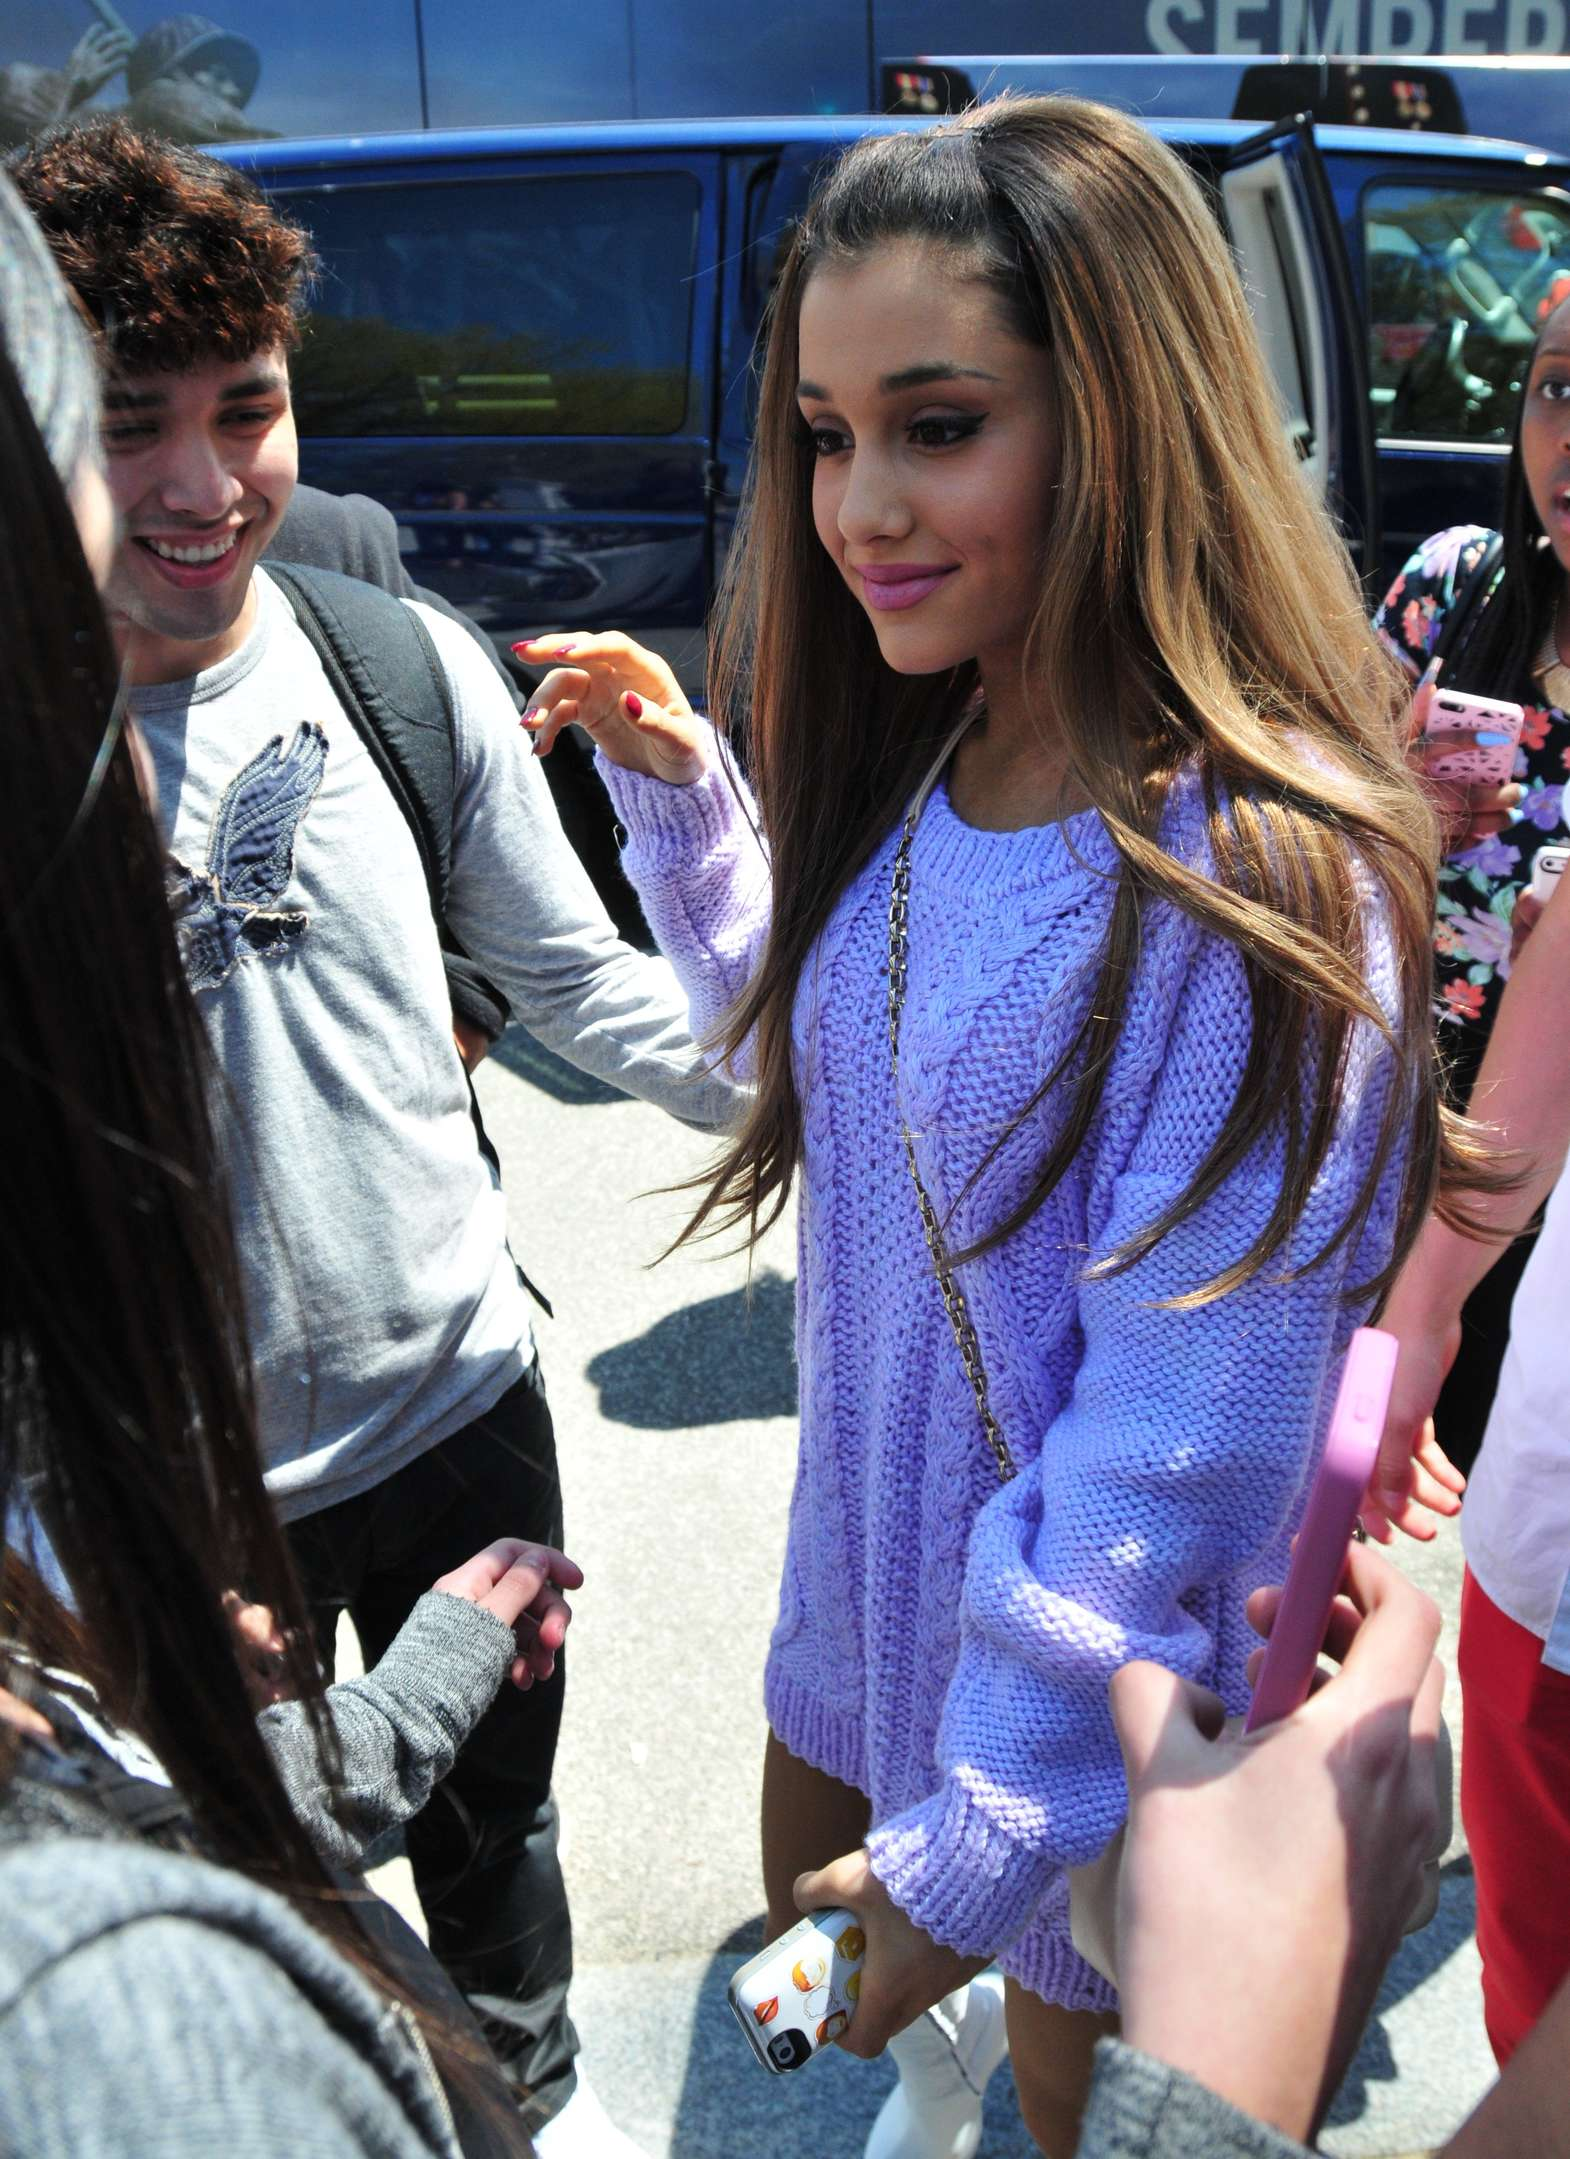 Neat Ariana 2014 House Easter Egg Roll Full Size Ariana 2014 House Easter Egg Roll Gotceleb Ariana House Manhattan Ariana House Pete Davidson curbed Ariana Grande House